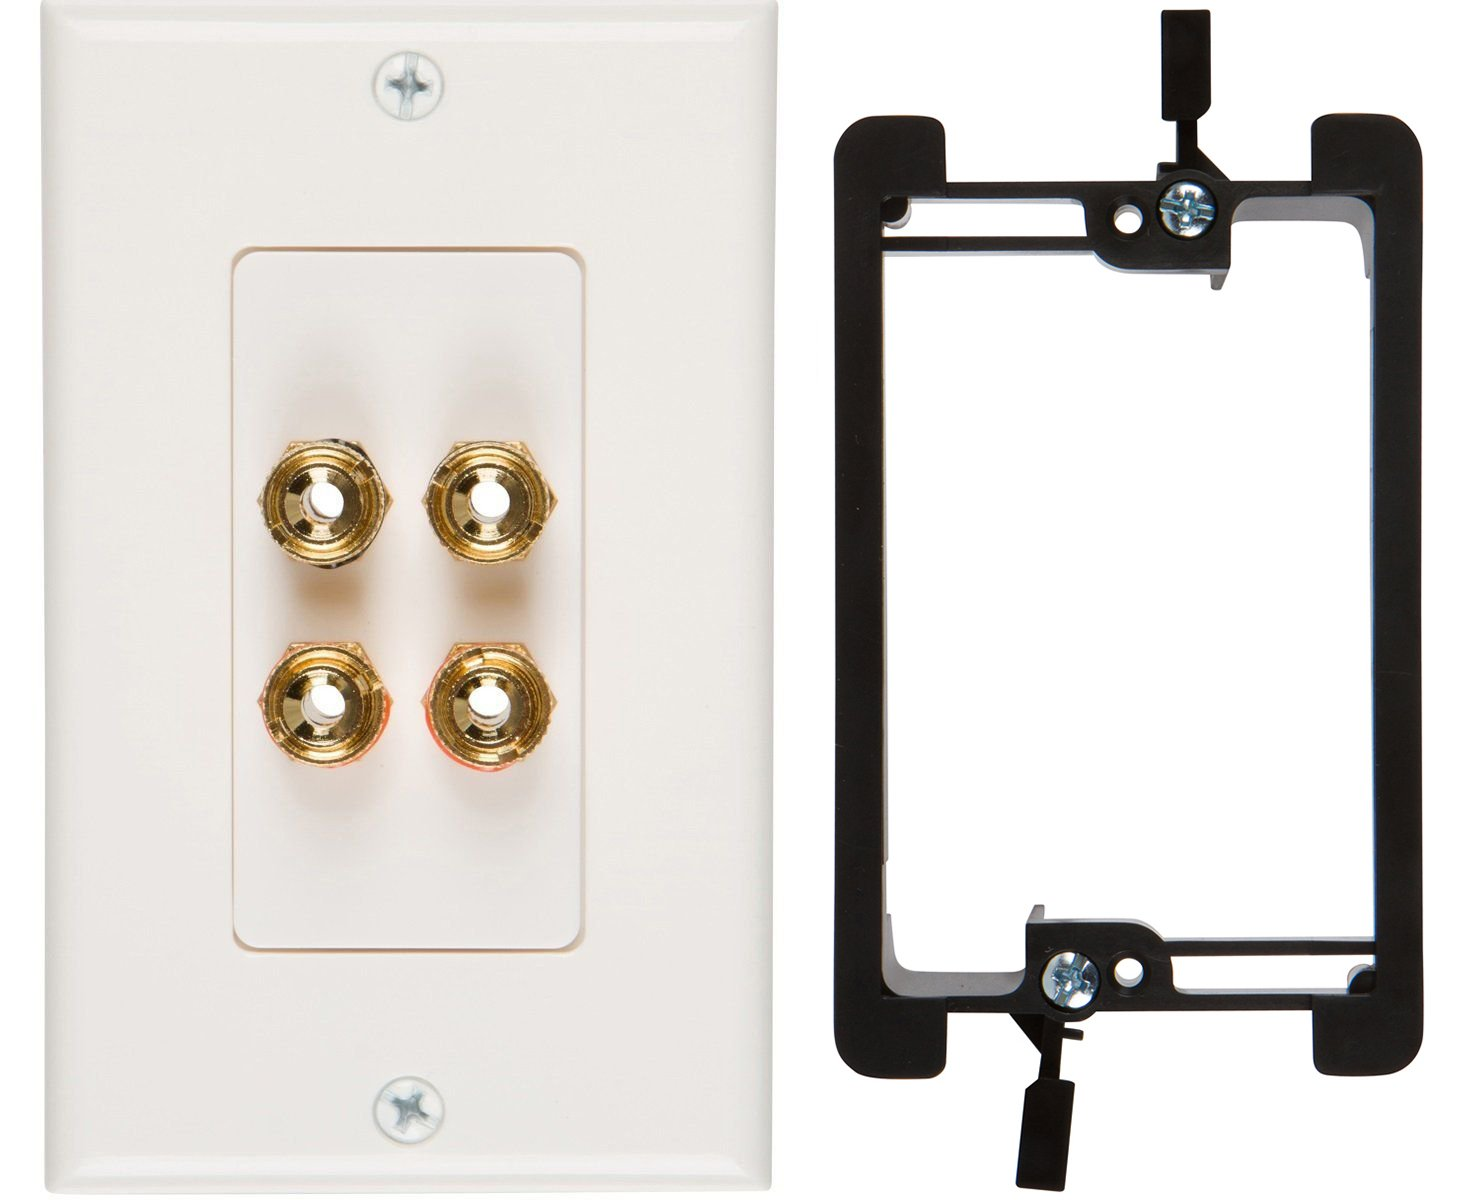 Buyer's Point Two Speaker Wall Plate, Premium Quality Gold Plated Copper Banana Binding Post Coupler Type, with Single Gang Low Voltage Mounting Bracket Device